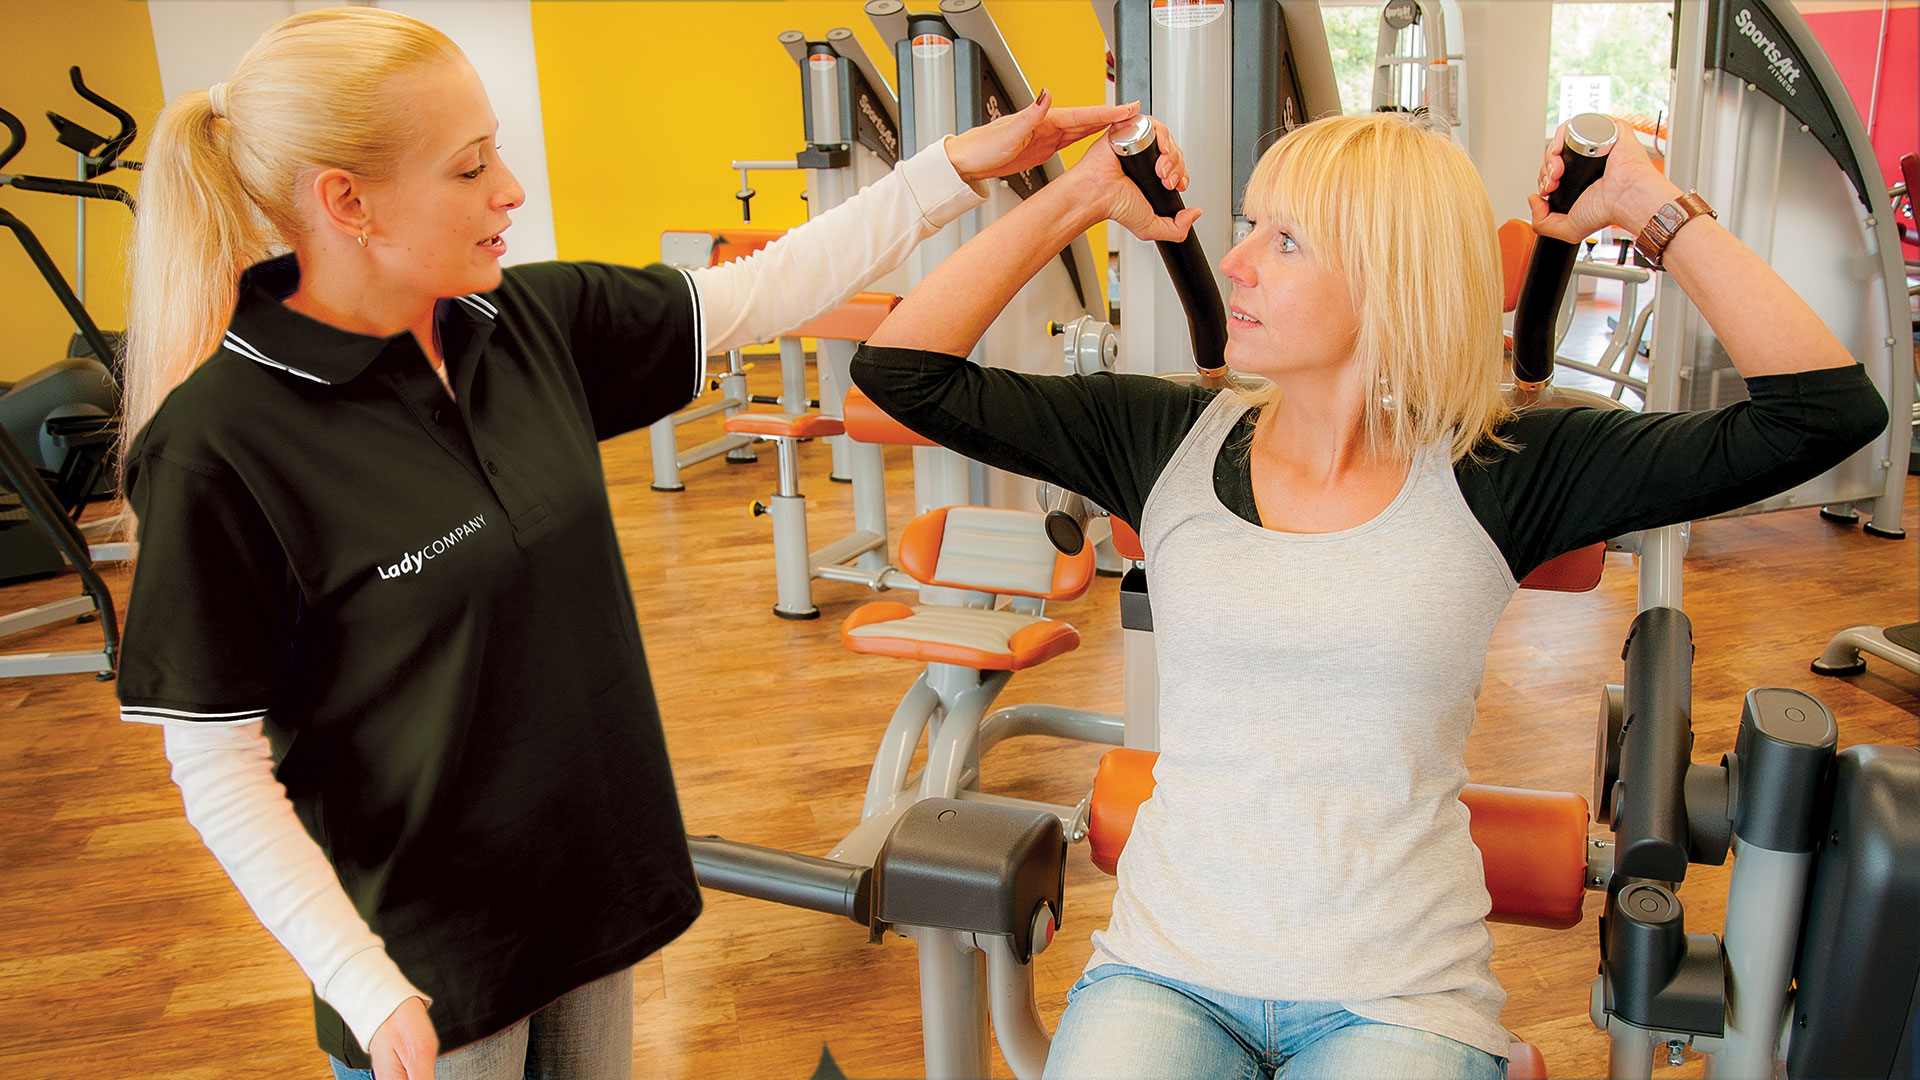 Frauenfitness - Ladycompany - Berlin